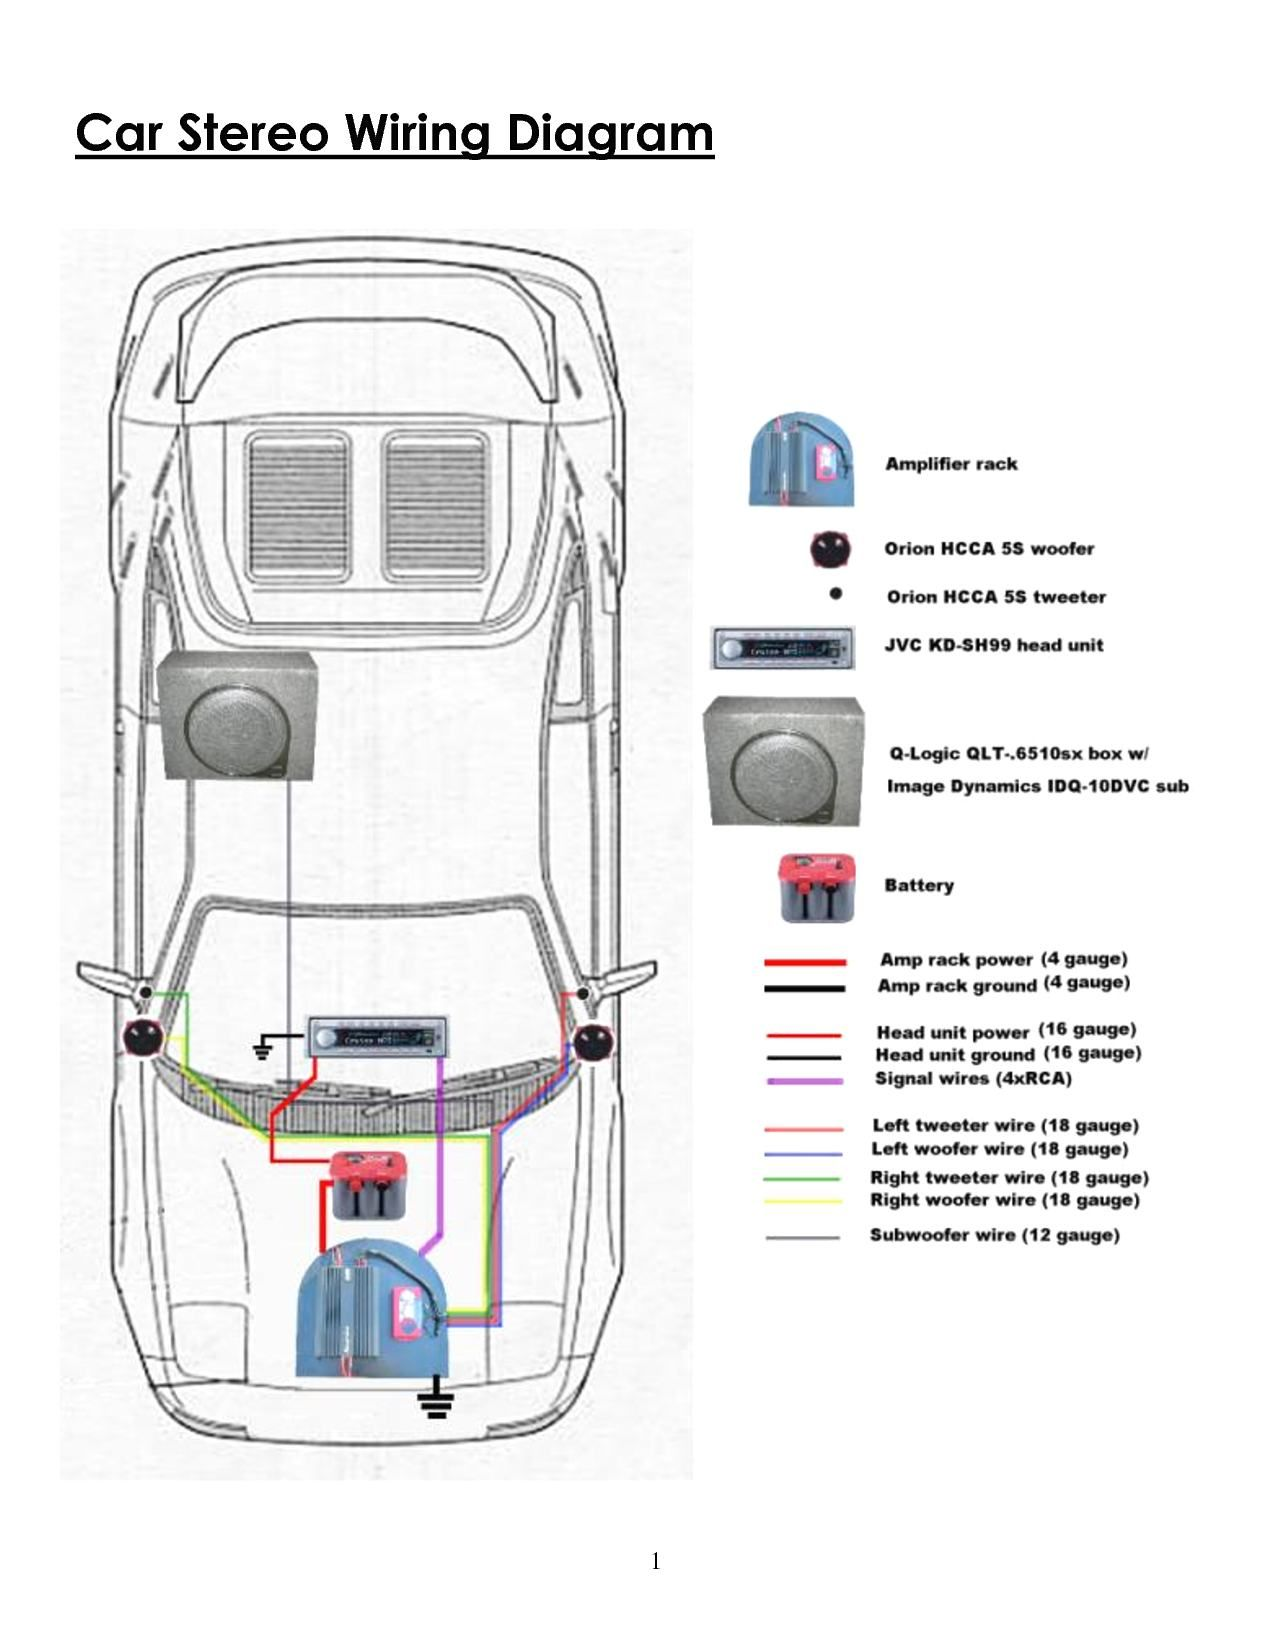 bose car amplifier wiring diagram bookingritzcarlton info [ 1275 x 1650 Pixel ]